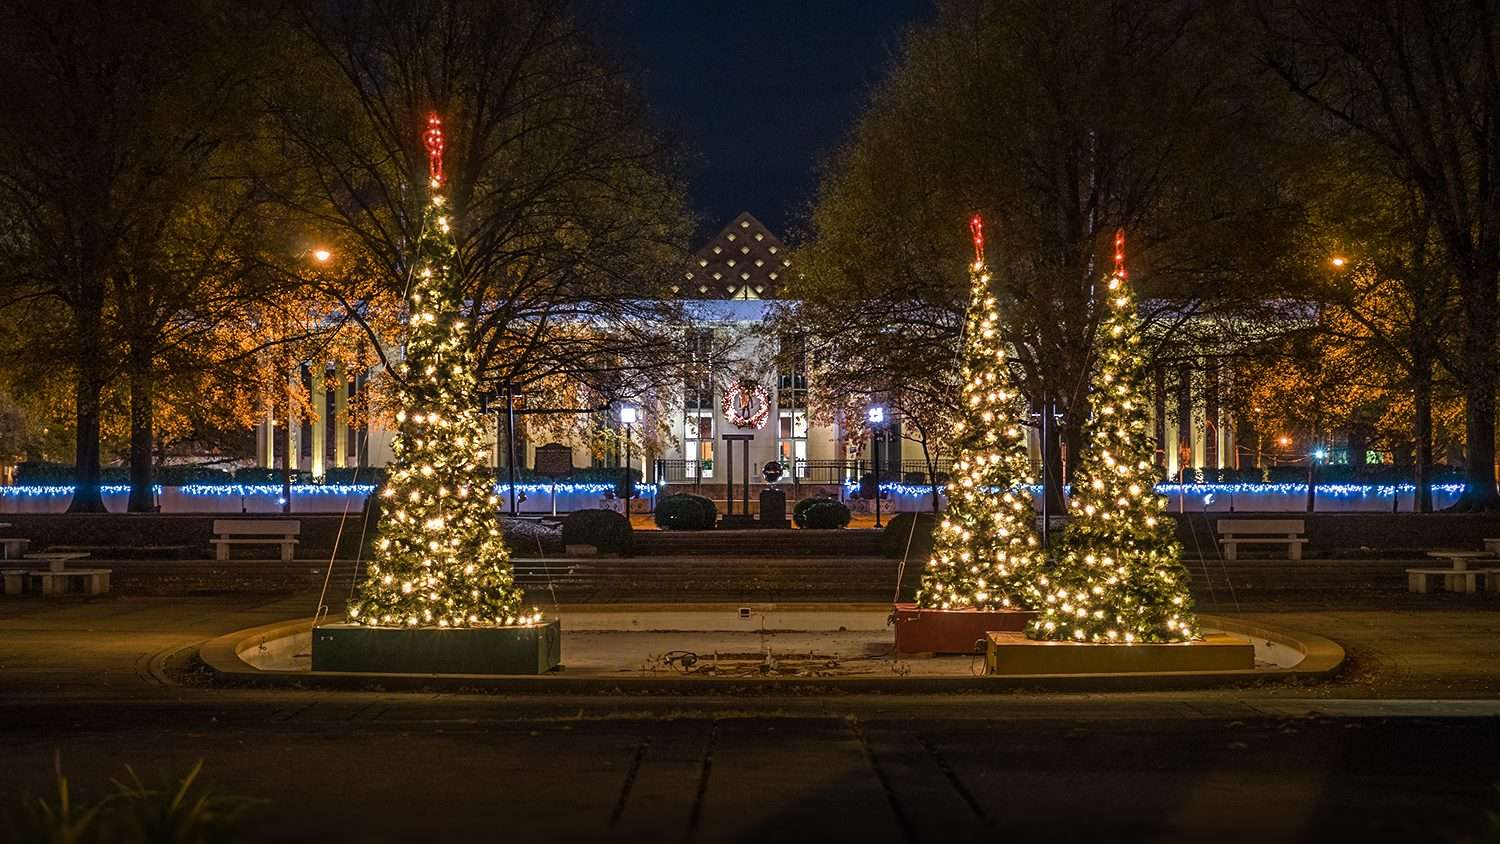 Nov 29, 2017 - Paducah City Hall Christmas Trees/photonews247.com